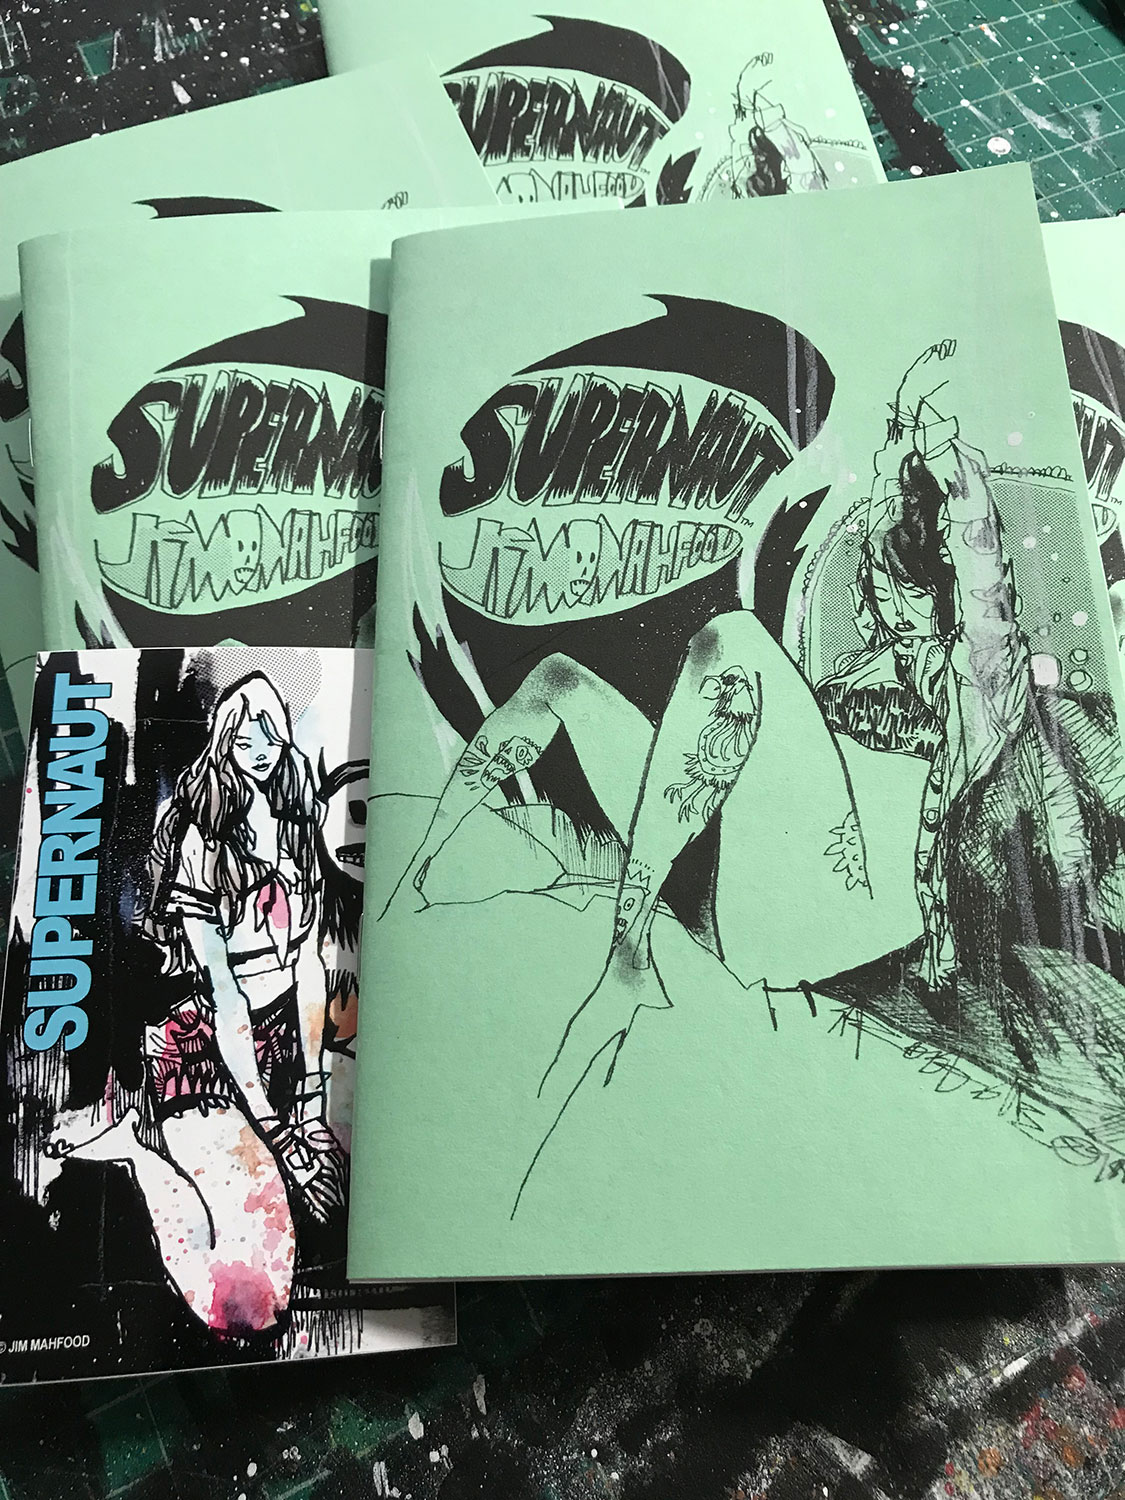 SUPERNAUT SKETCHBOOK